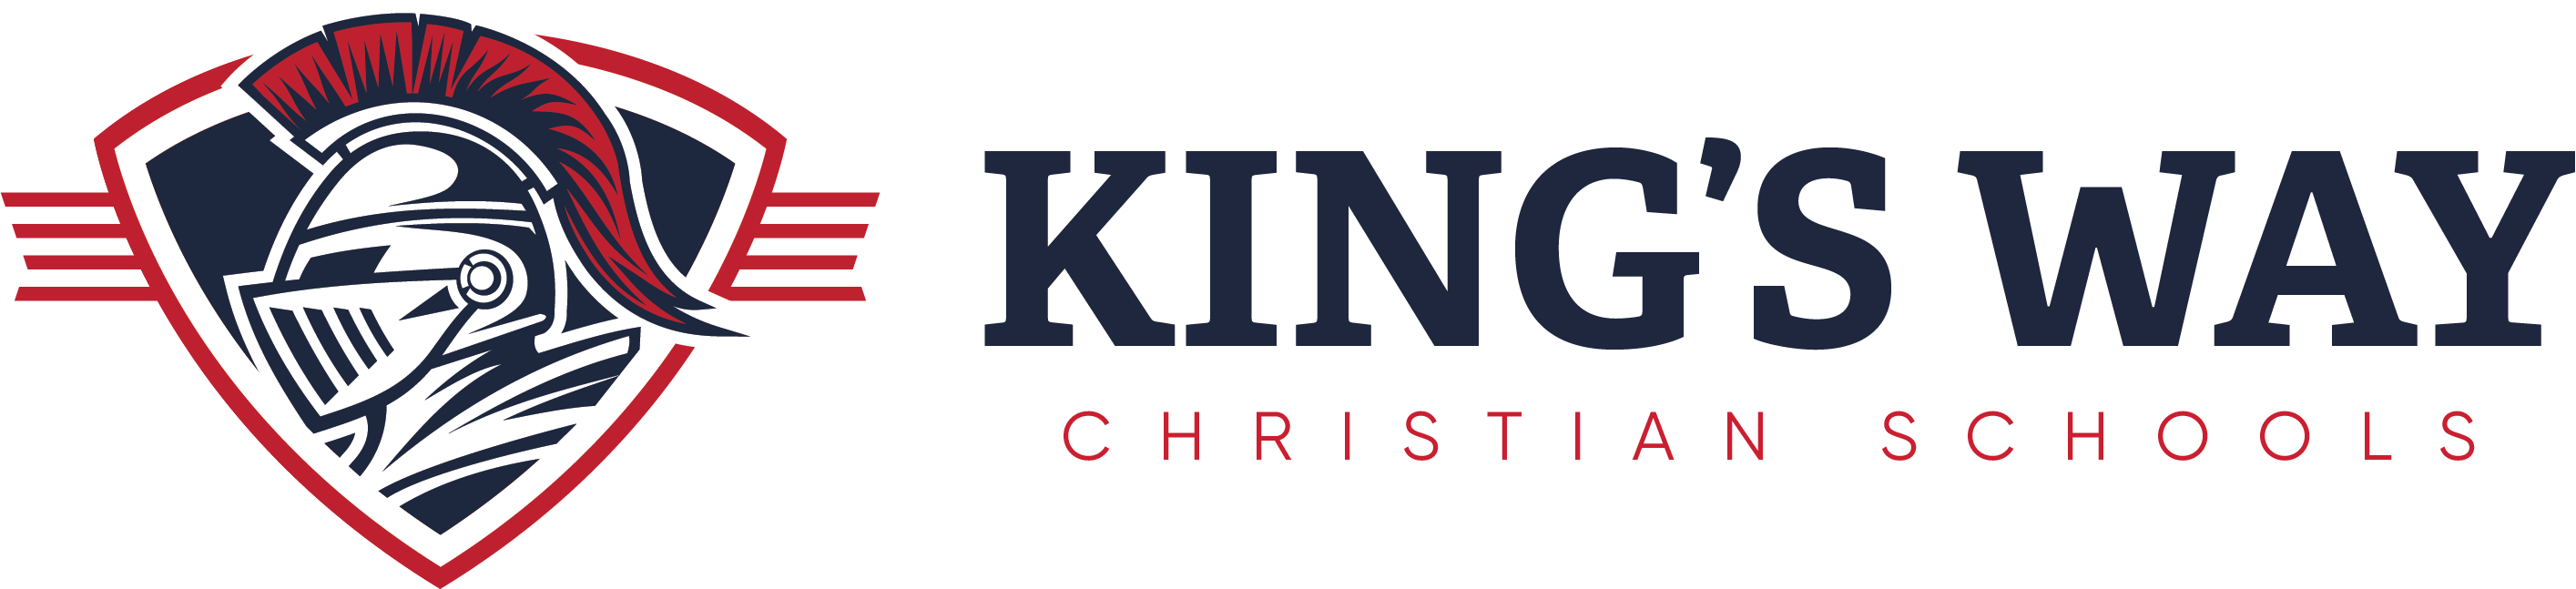 King's Way Christian Schools